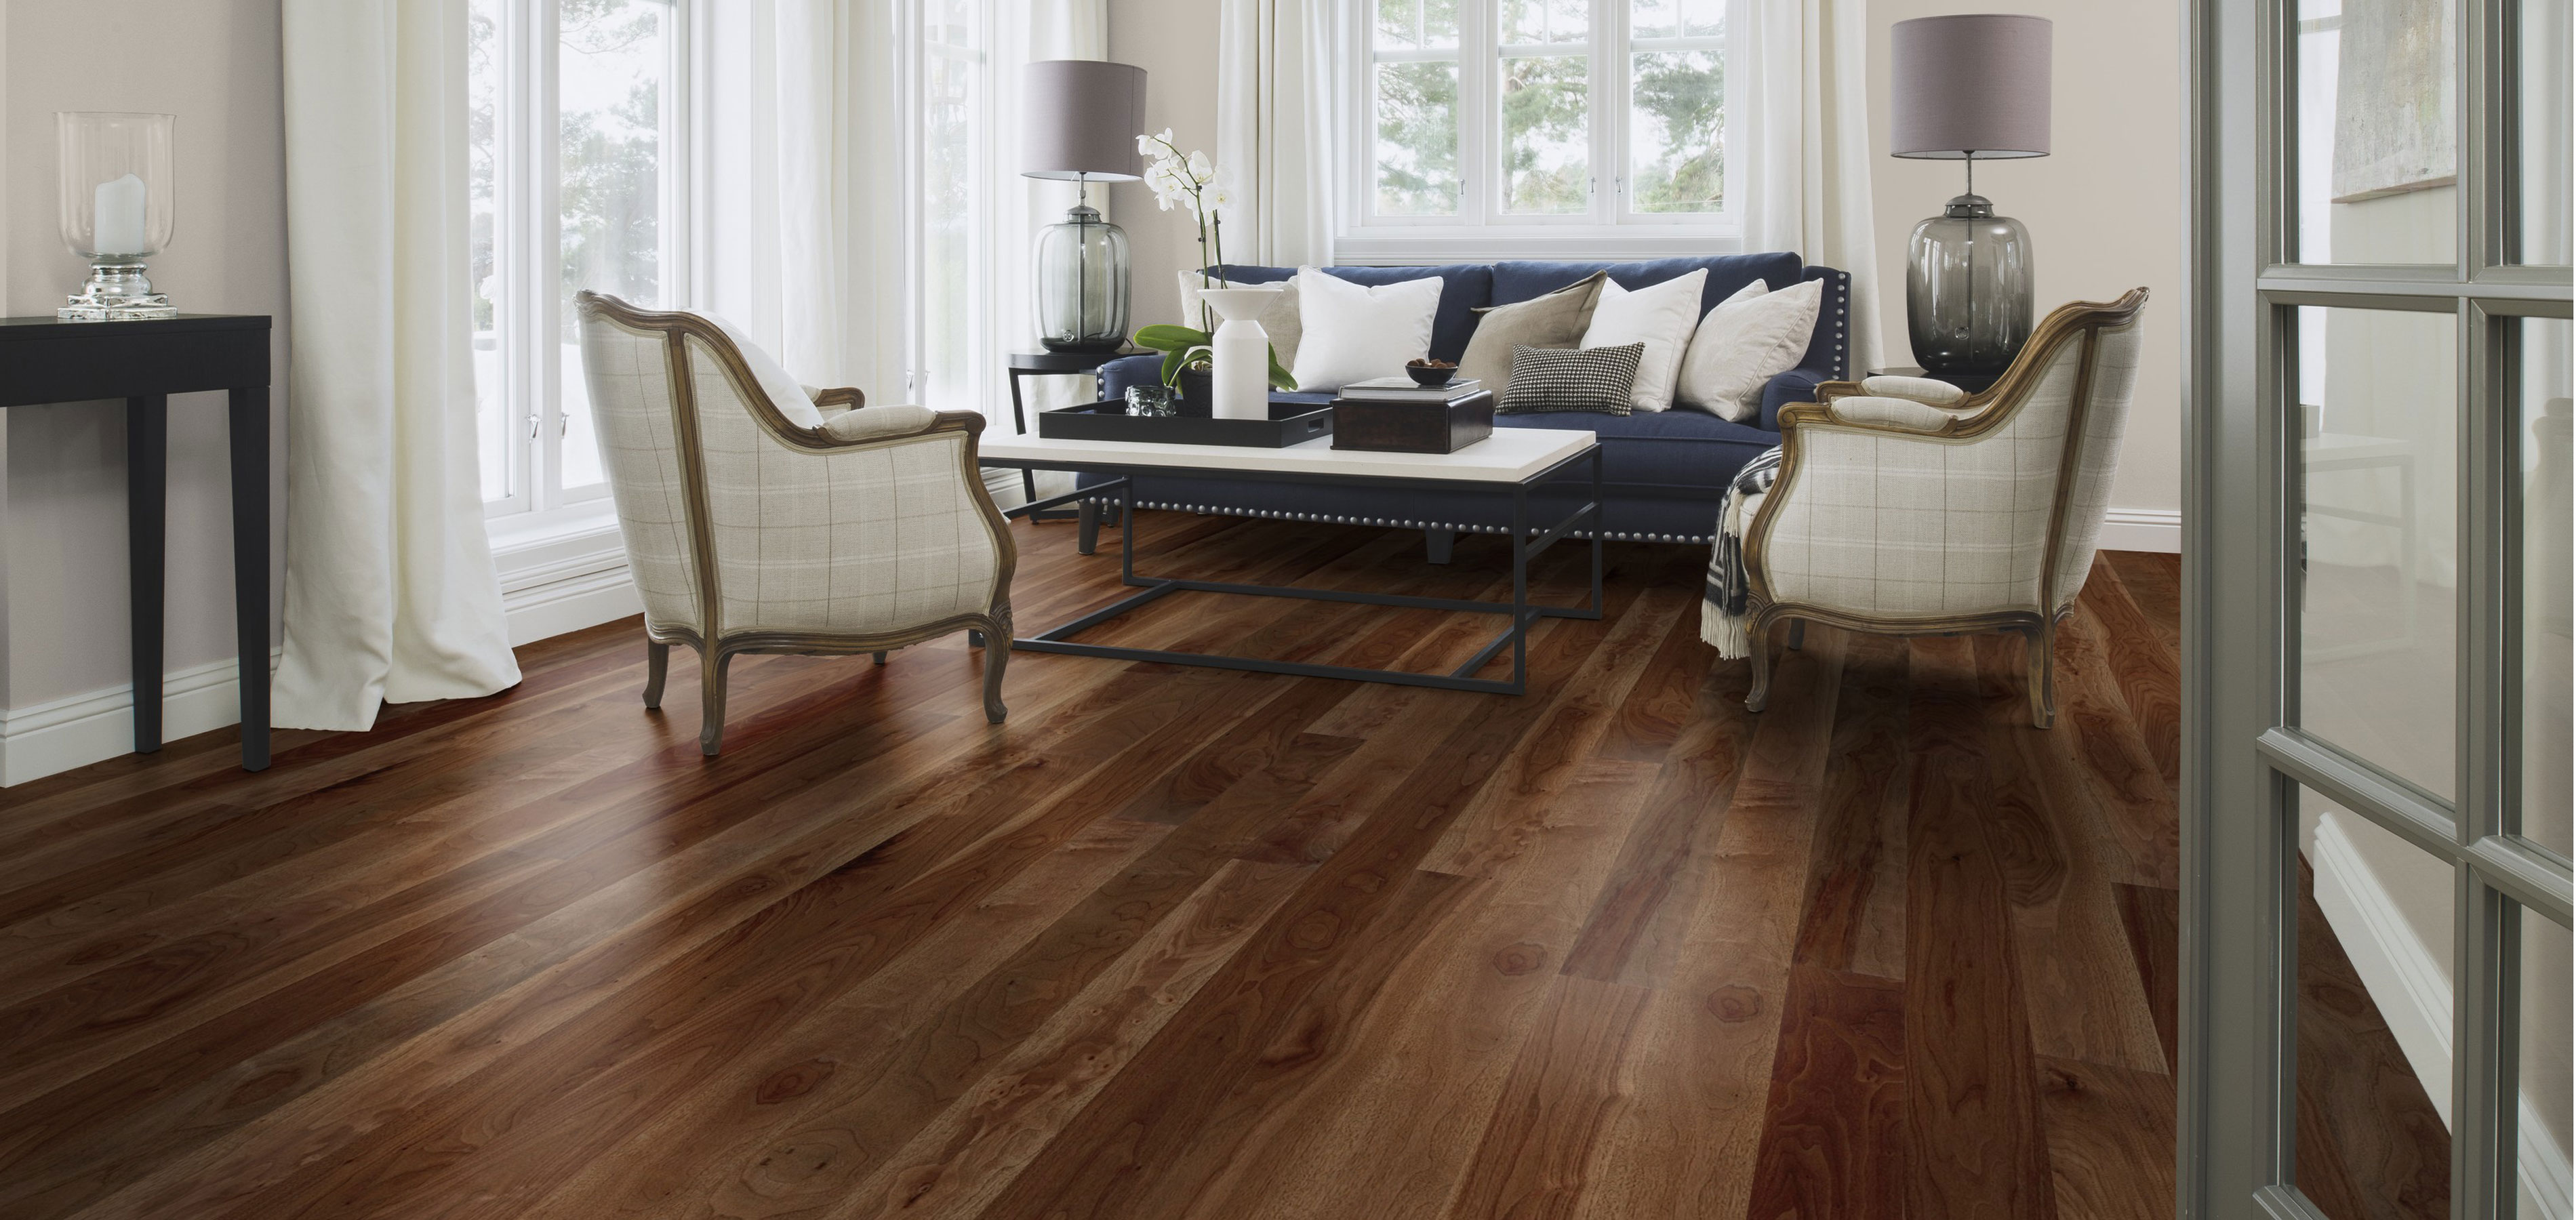 Boen flooring walnut andante plank wood flooring store for Hardwood flooring stores